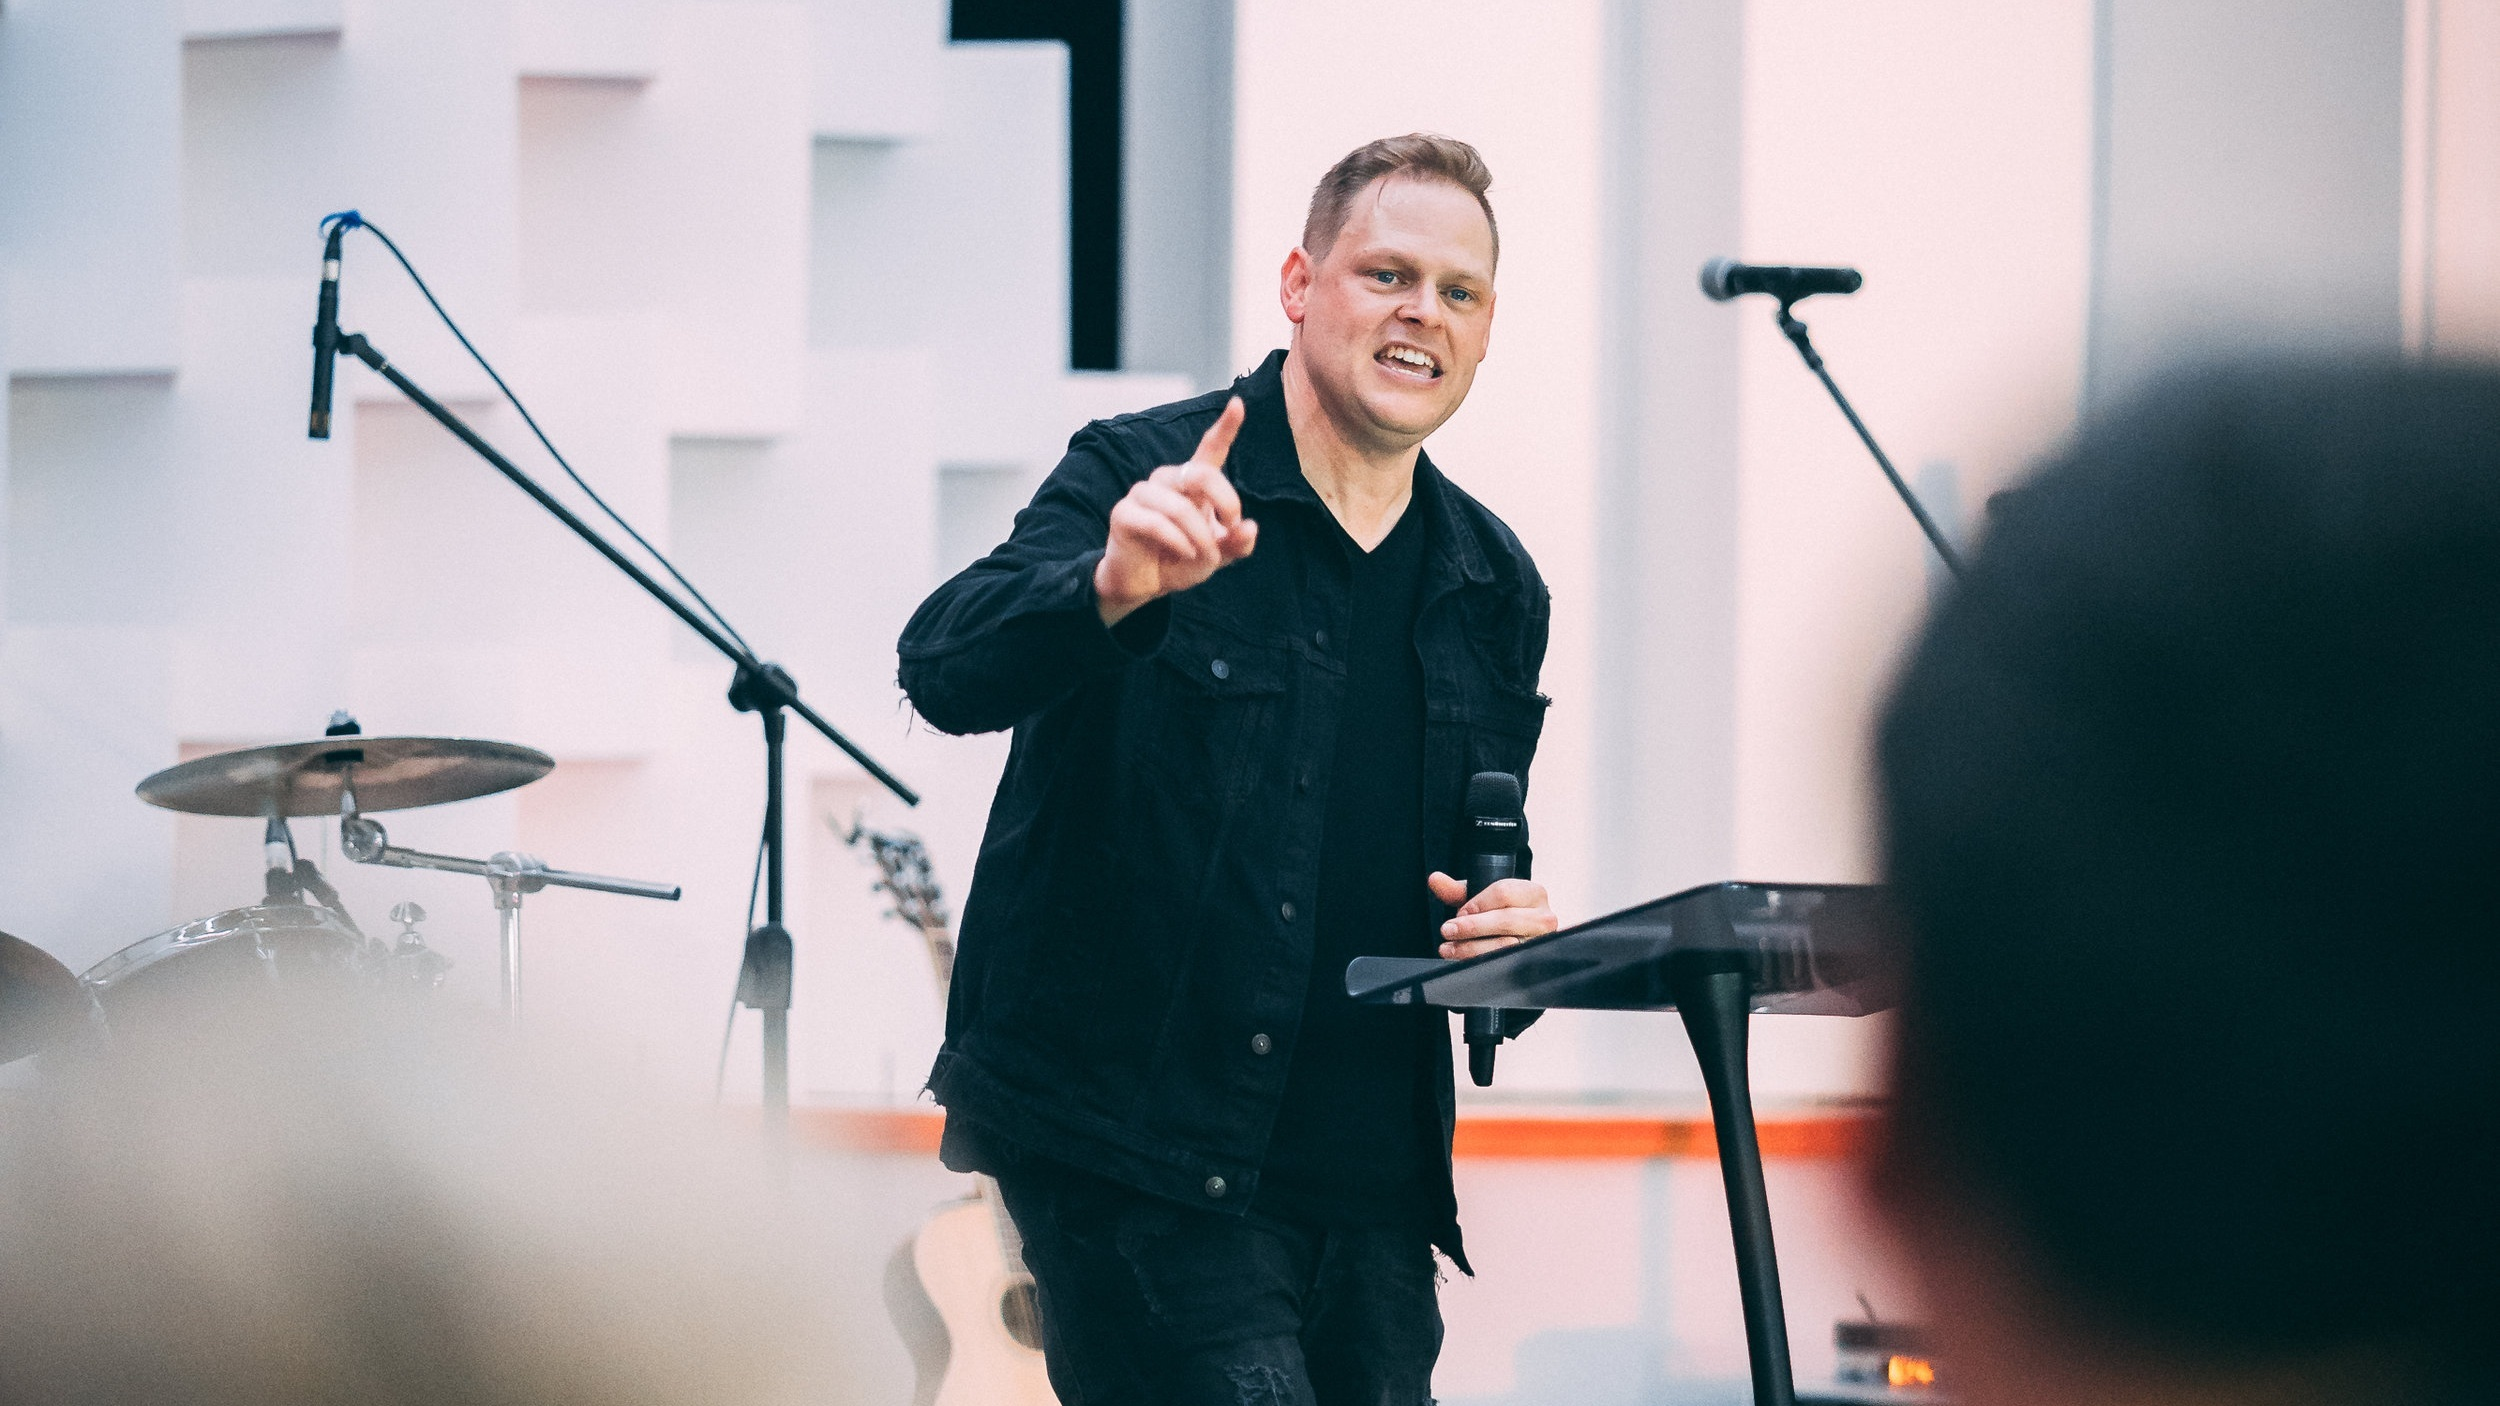 PREACHING - We are convinced that the Bible is God's living Word and causes our lives to be transformed and restored, enabling us to live lives that echo the grace and goodness of Jesus. At C3 Wellington, we are committed to preaching the Bible and bringing a message that is fueled by passion and full of faith.